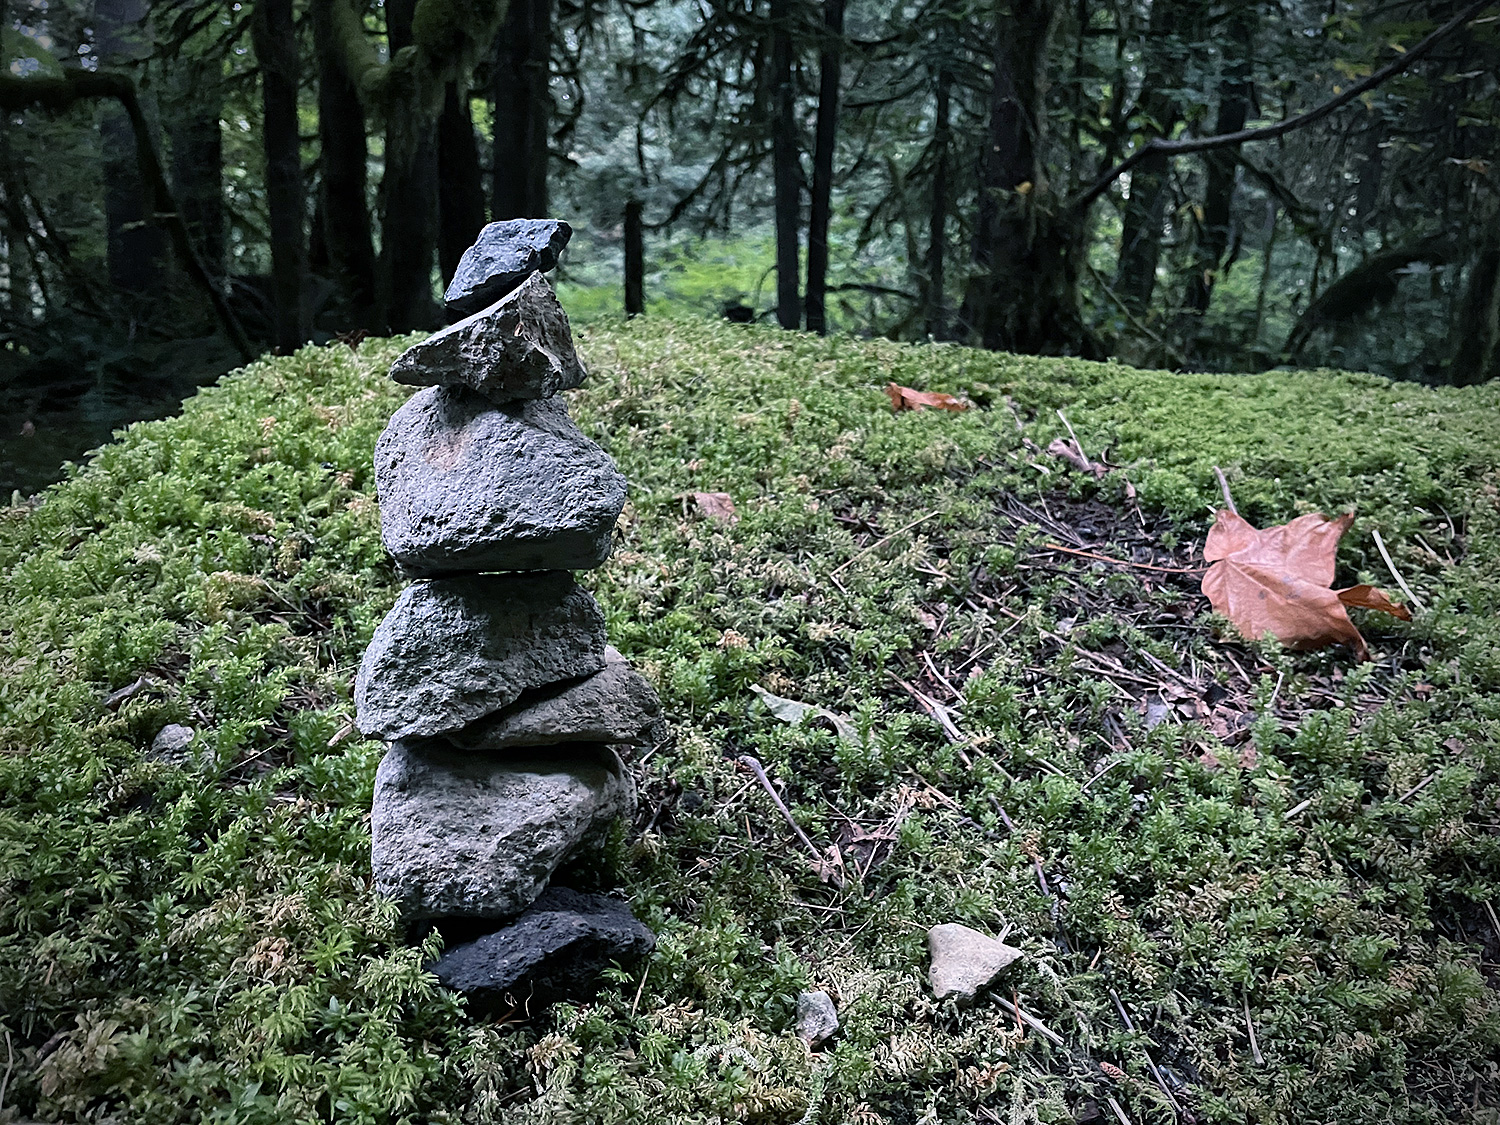 A photograph of a small stack of stones, precariously balanced, for purely decorative purposes.